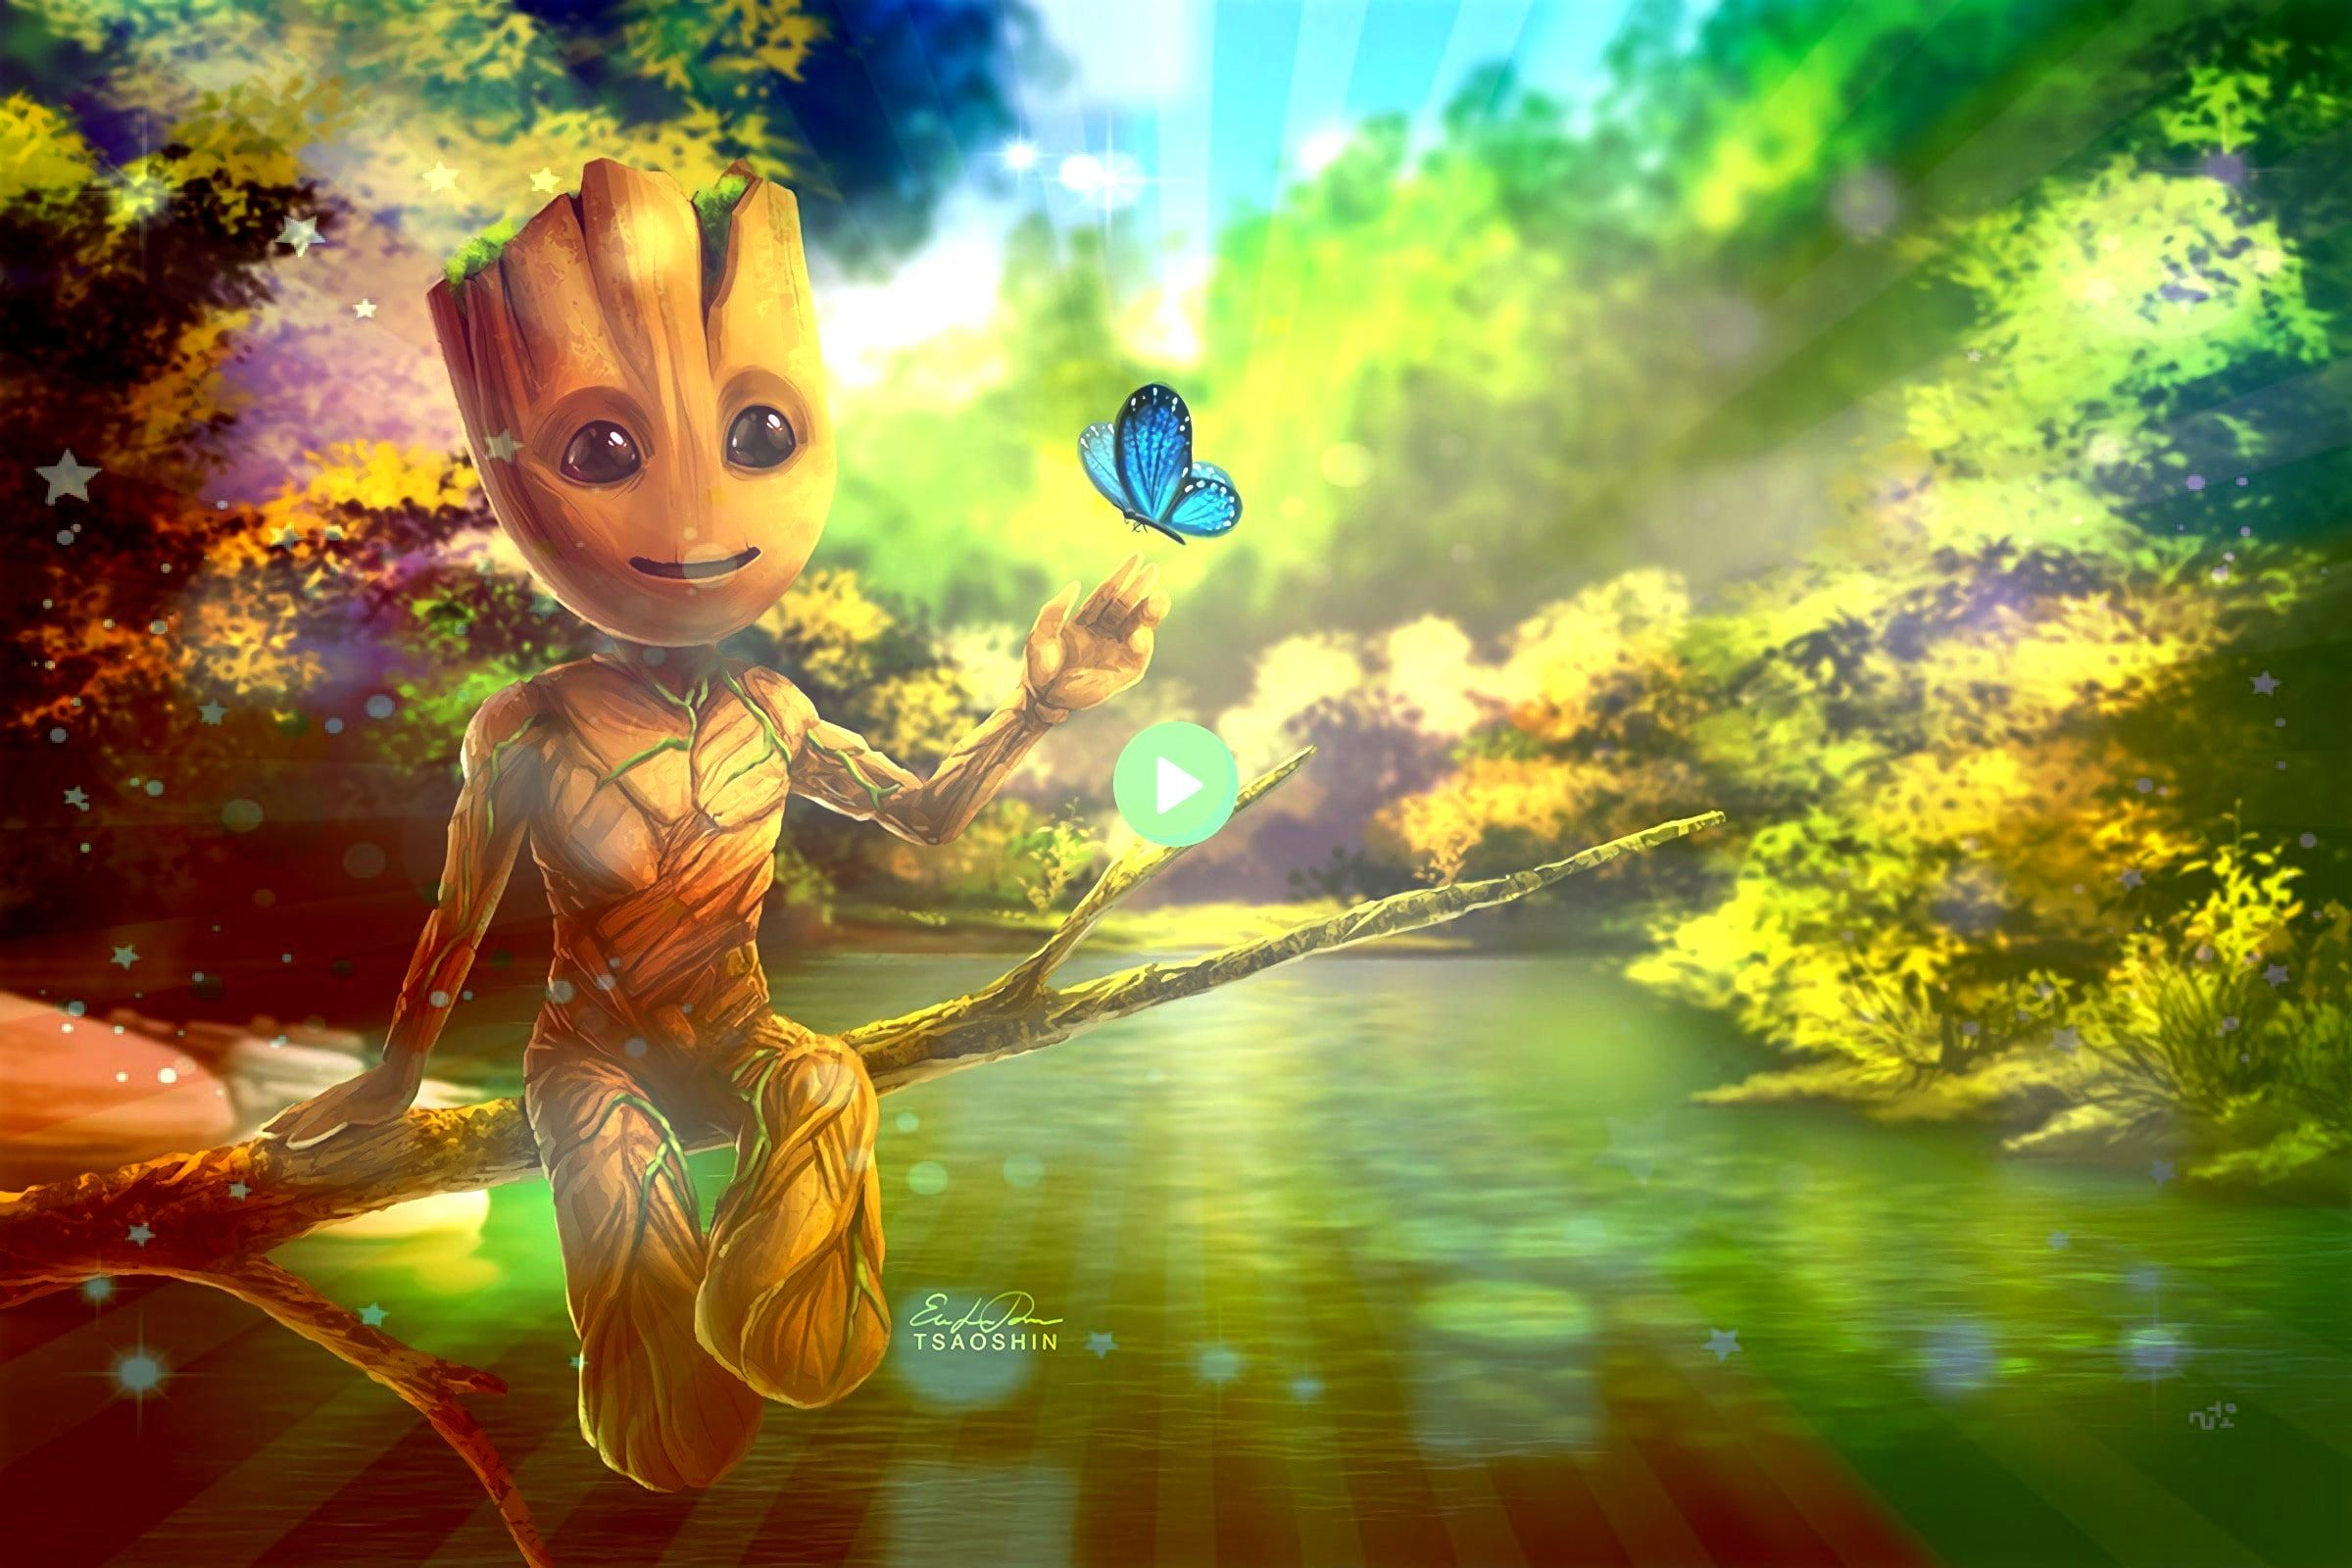 of the Galaxy Vol 2 Baby GrootGuardians of the Galaxy Vol 2 Baby Groot 11 x 17 Museum Quality 80 lb Gloss Art Print Hand Drawn Digitally Colored  100 Original Print comes...